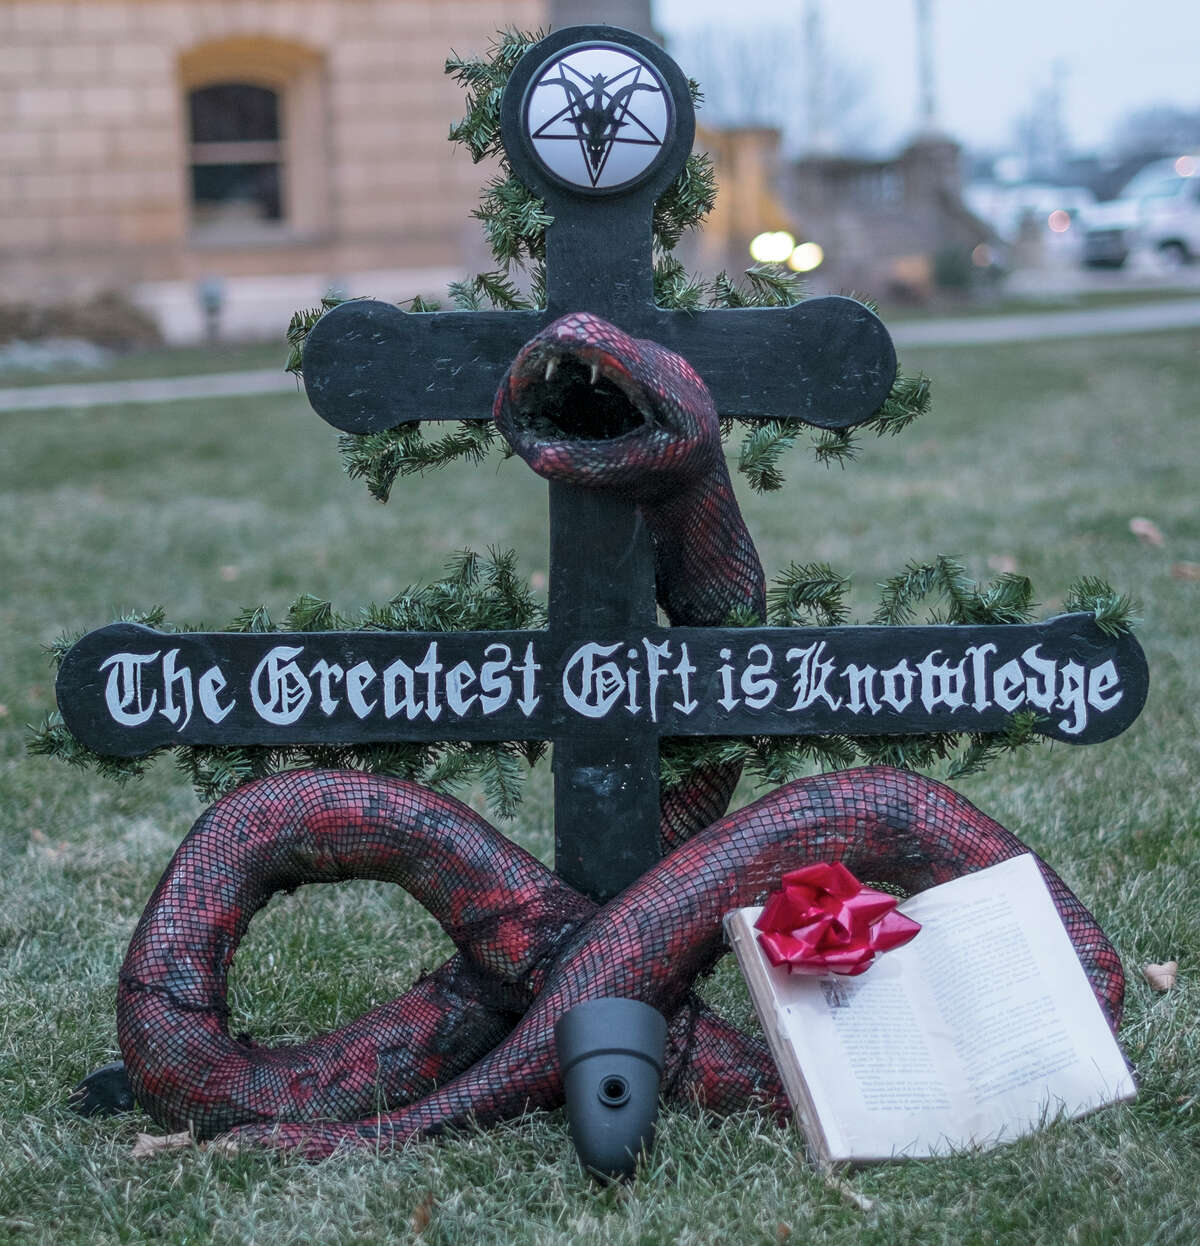 """A """"Snaketivity"""" scene featuring a snake offering a book called """"Revolt of the Angels"""" as a gift, as displayed on the grounds of the Capitol in Lansing, Mich., before Christmas 2014."""